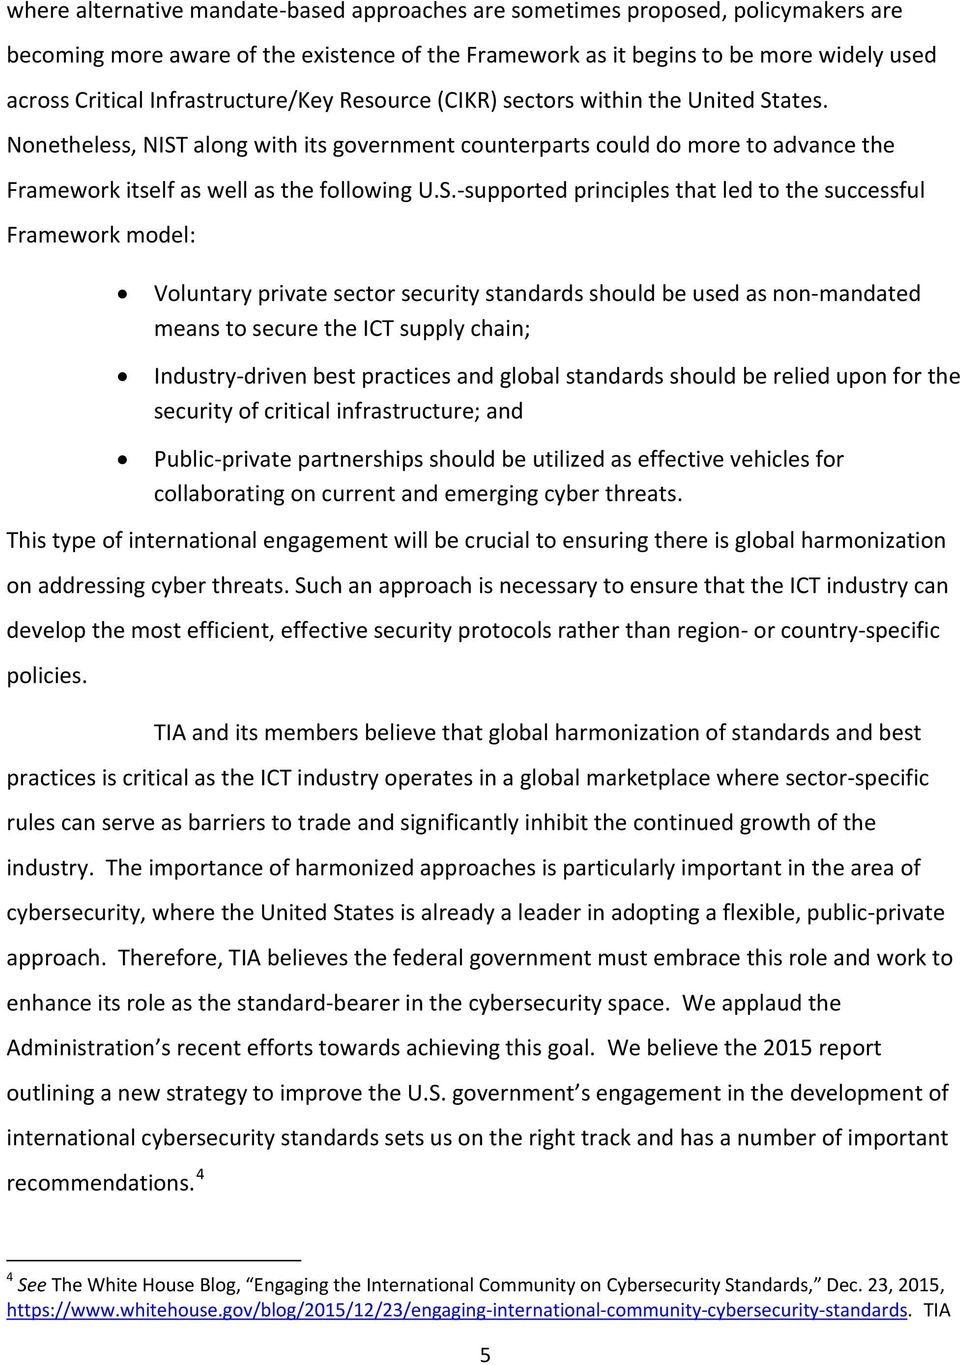 S.-supported principles that led to the successful Framework model: Voluntary private sector security standards should be used as non-mandated means to secure the ICT supply chain; Industry-driven